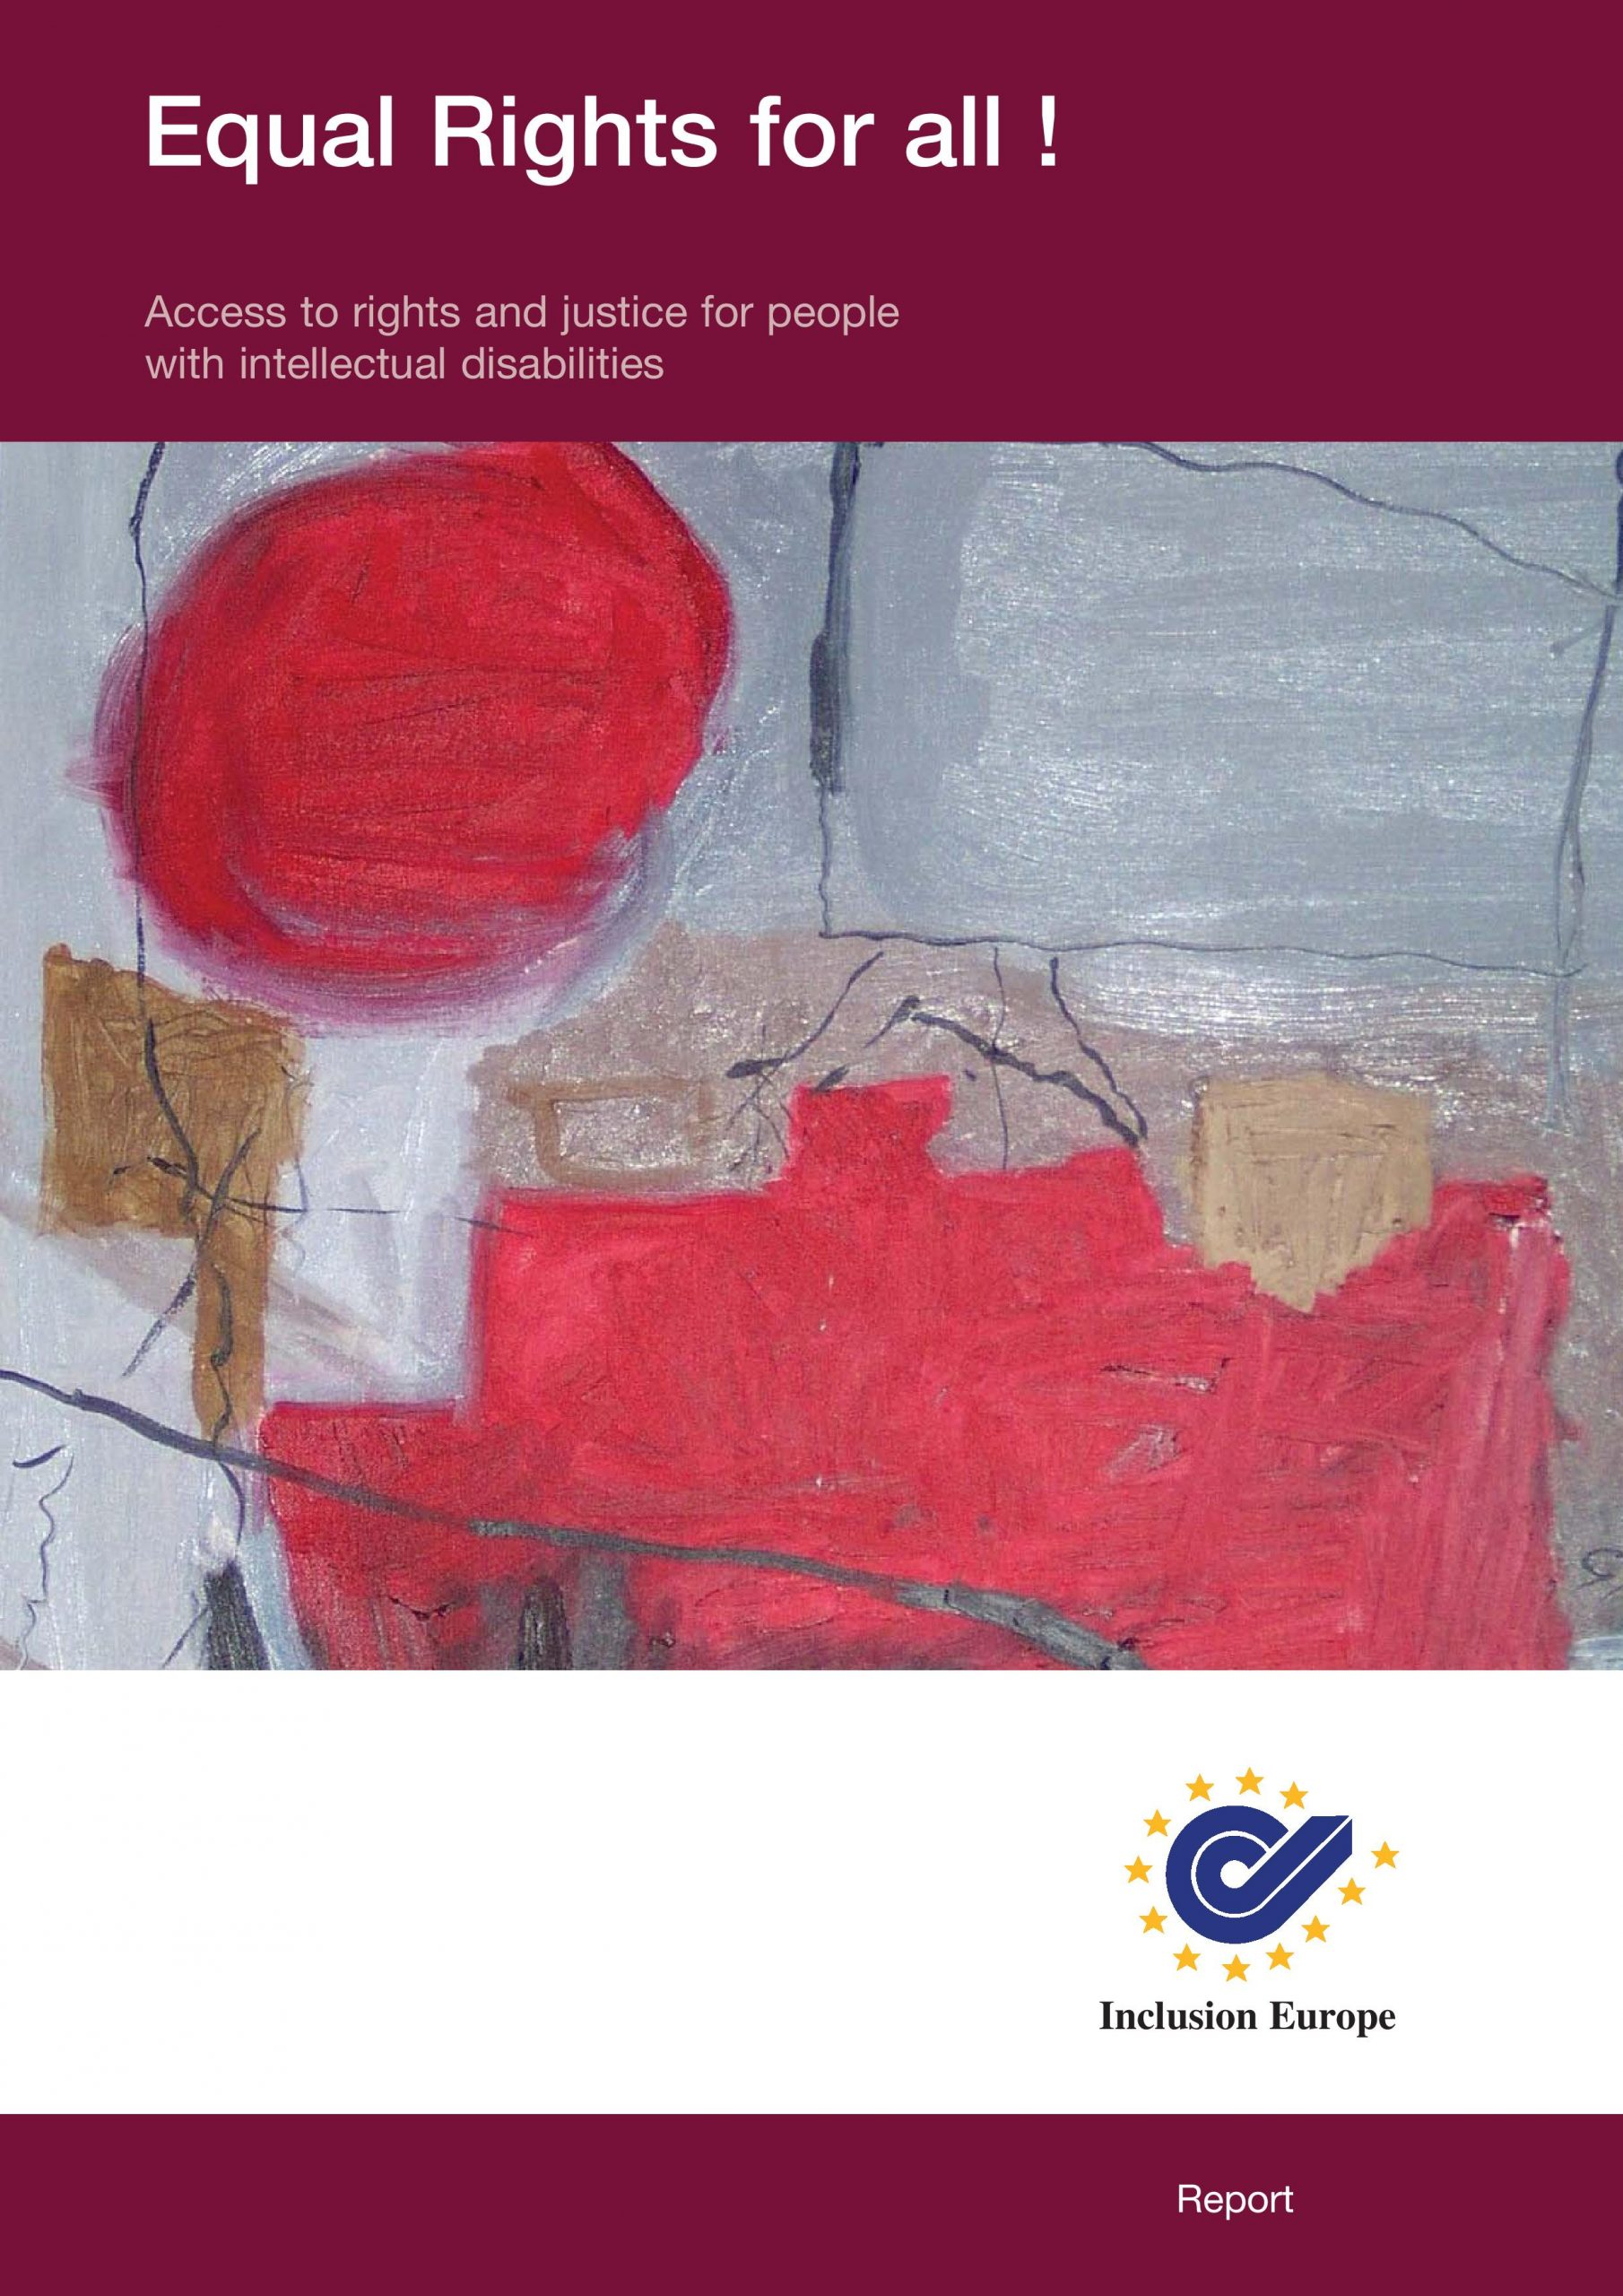 Cover art for: Equal Rights For All! Access To Rights And Justice For People With Intellectual Disabilities